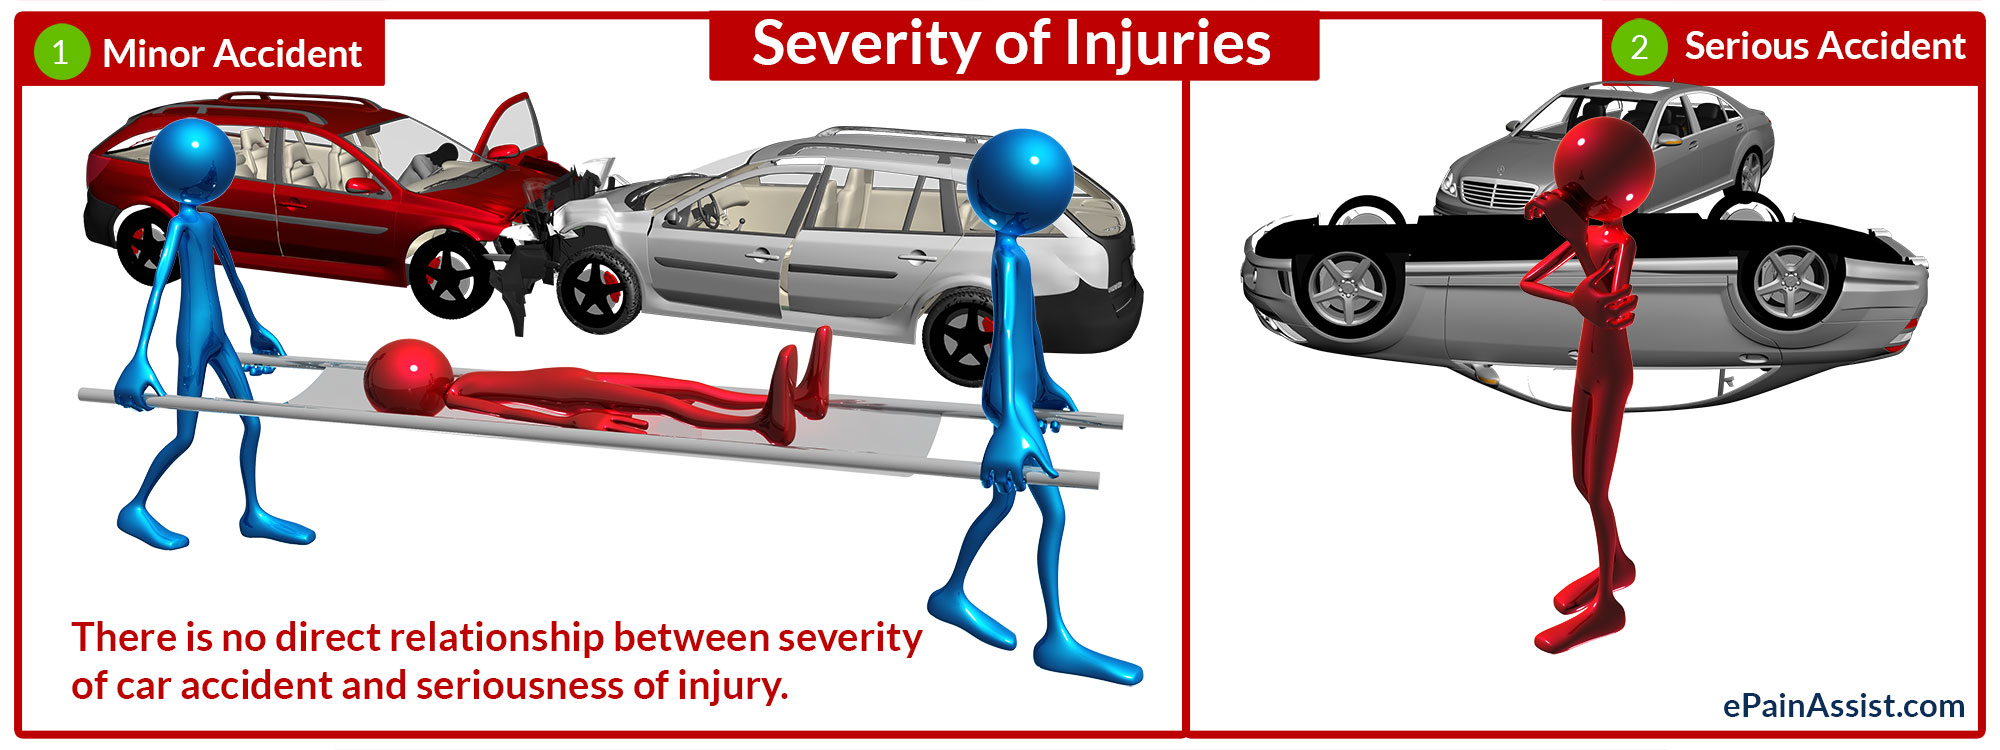 Relationship between Severity of Injury and Severity of Car Accidents